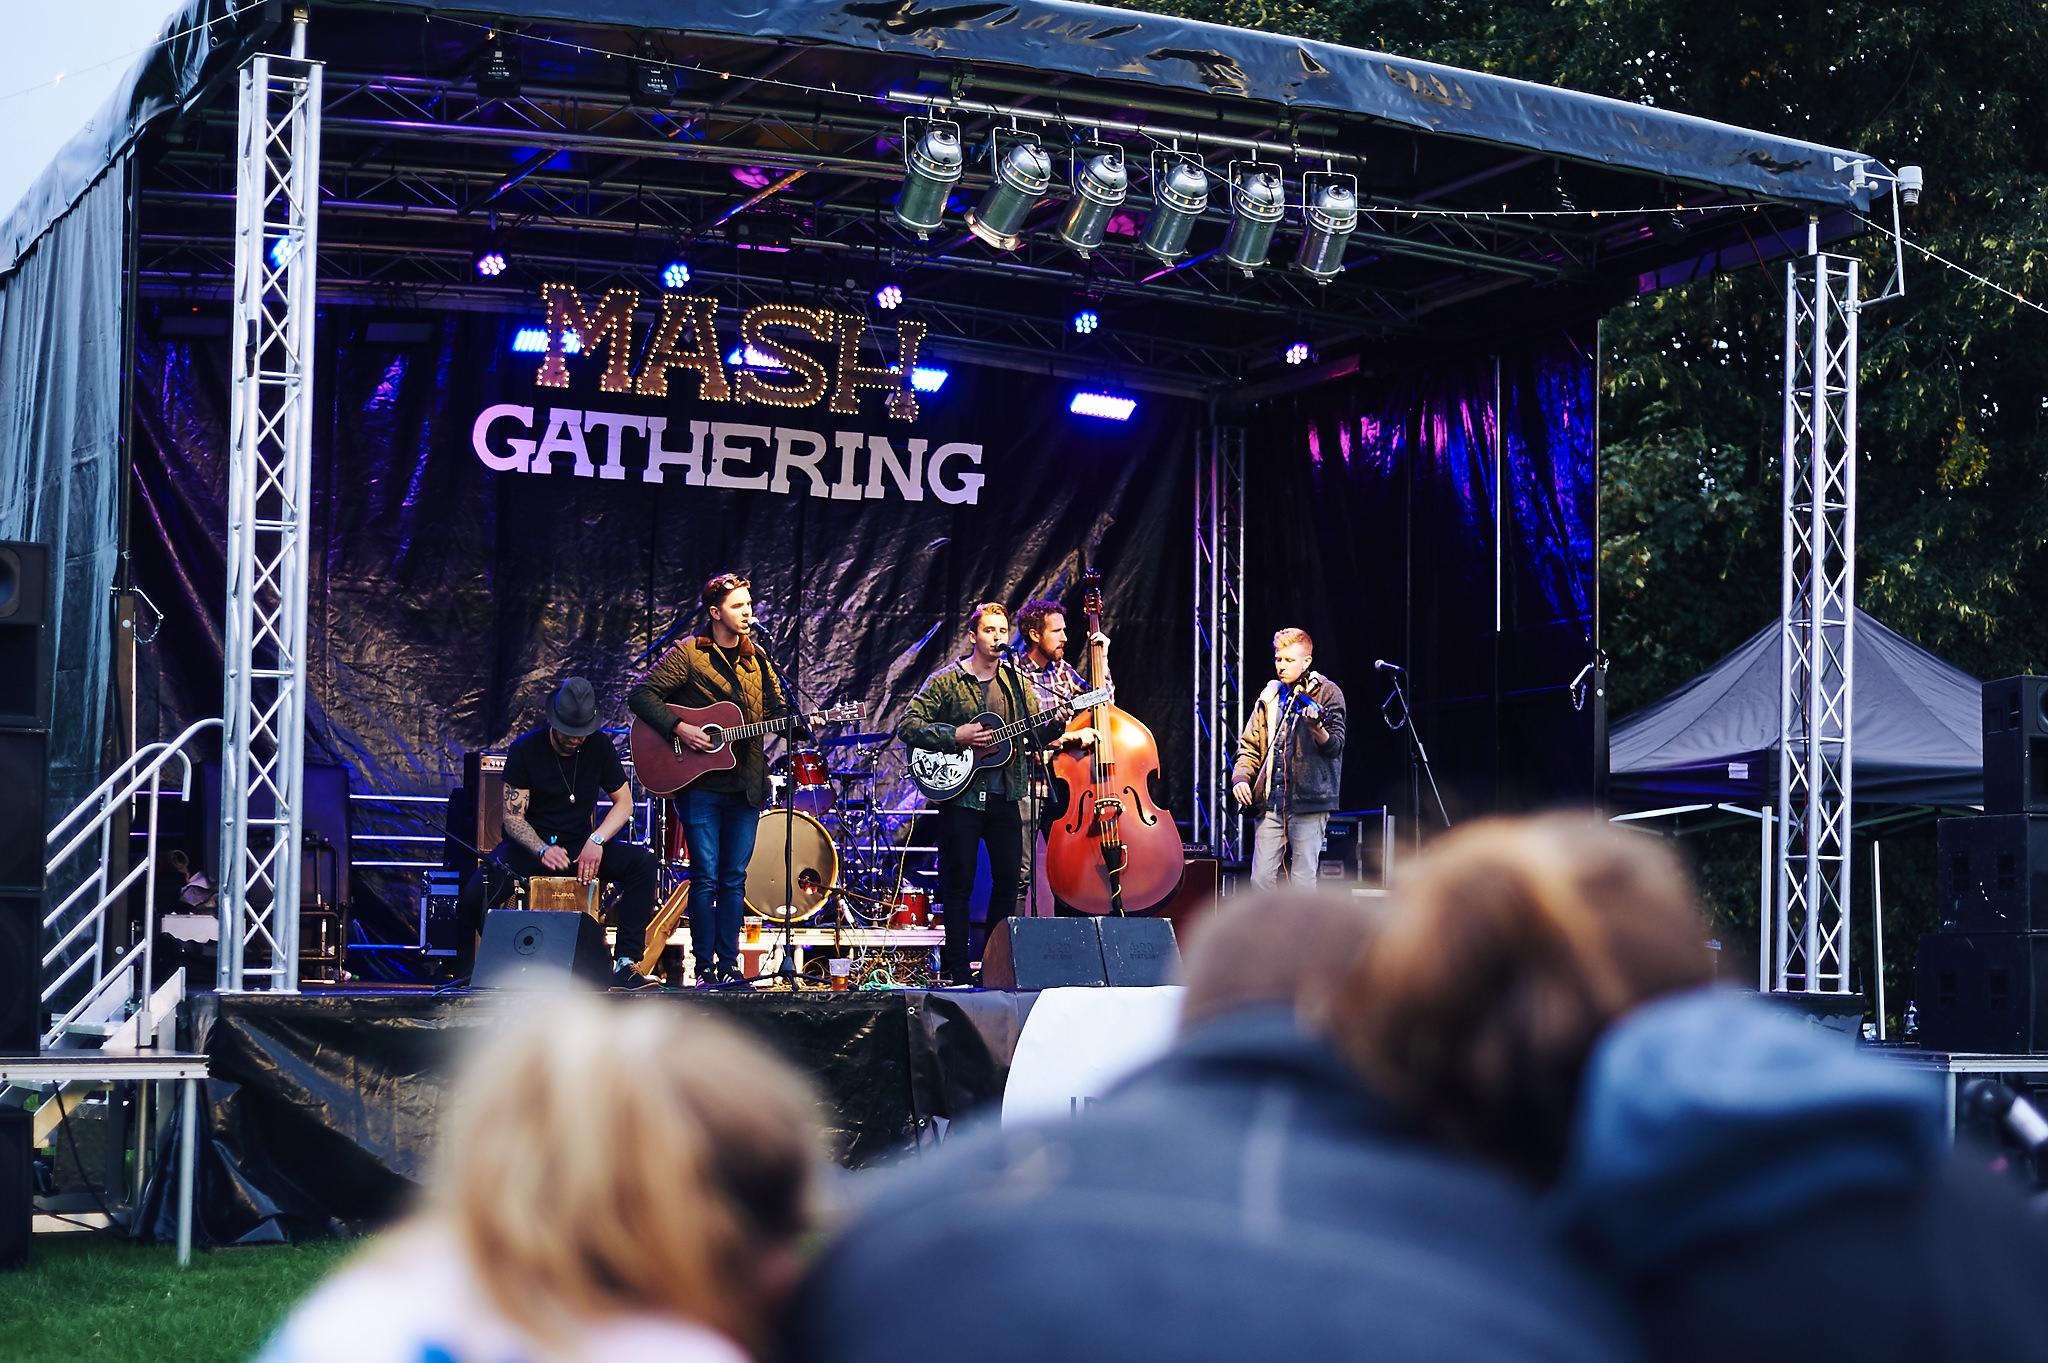 Mash_Gathering-idle-empire-on-jth-stage